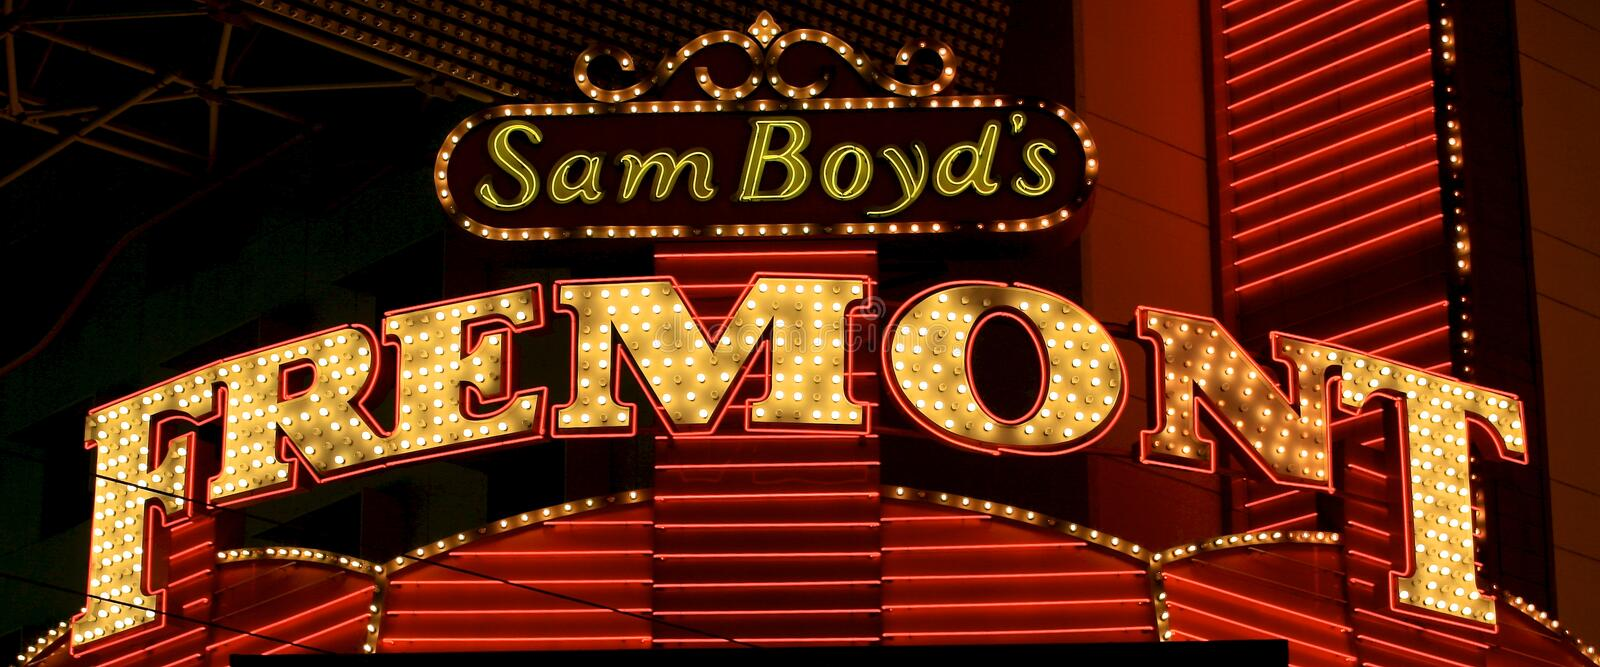 Sam Boyd's. The original Sam Boyd's on Fremont Street in Las Vegas Nevada stock photography